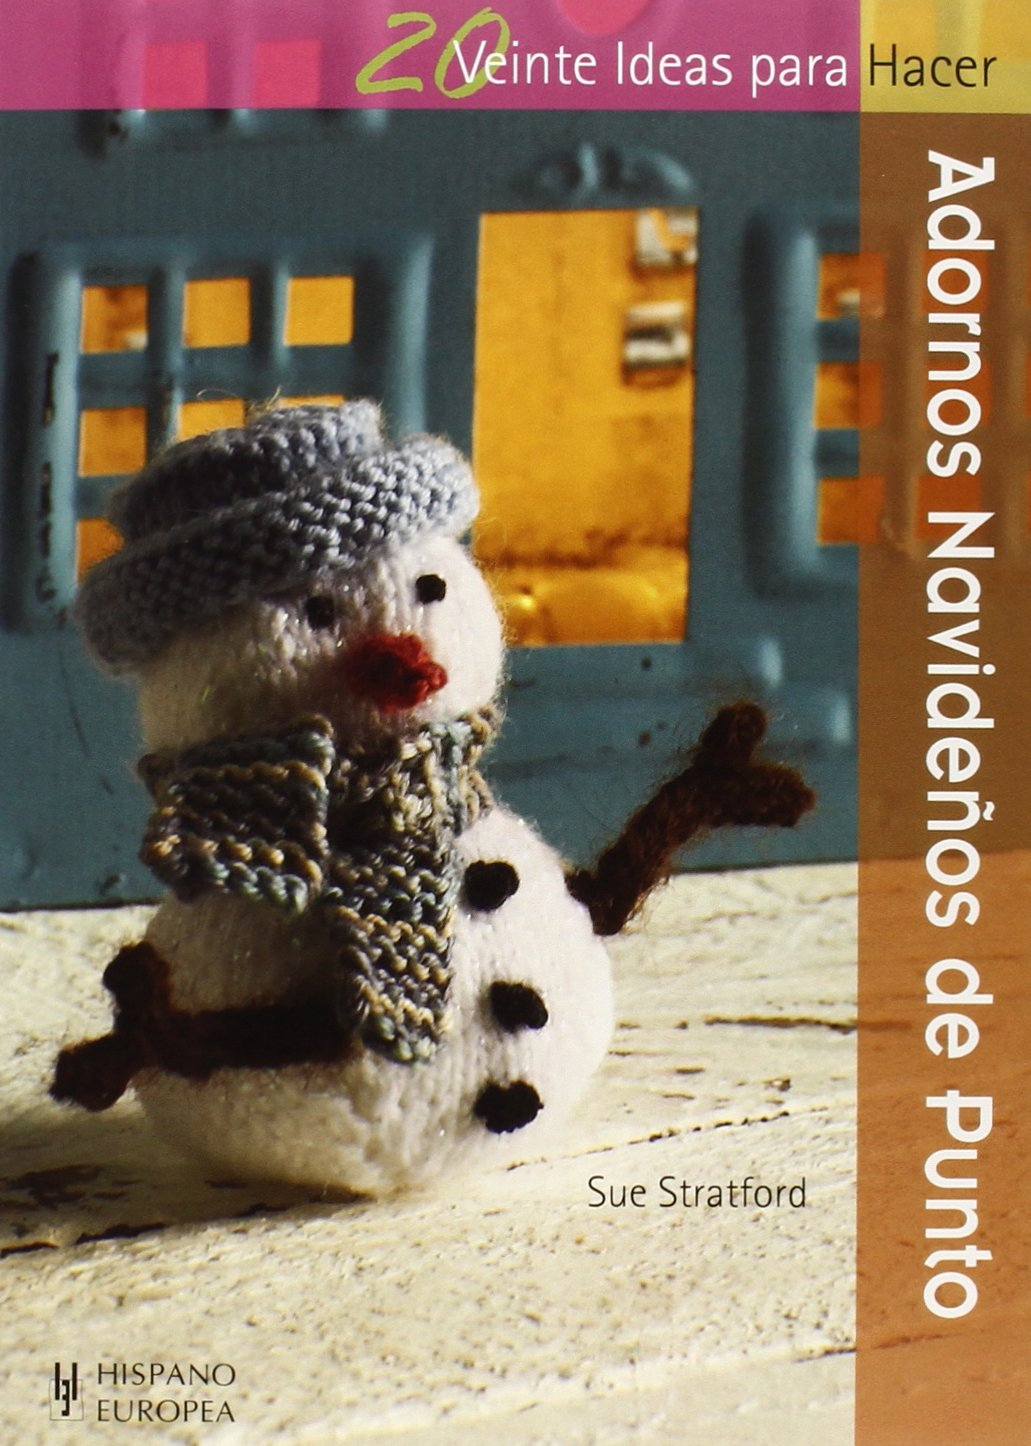 OS DE PUNTO - 20 IDEAS PARA HACER: STRATFORD(521089): 9788425521089: Amazon.com: Books